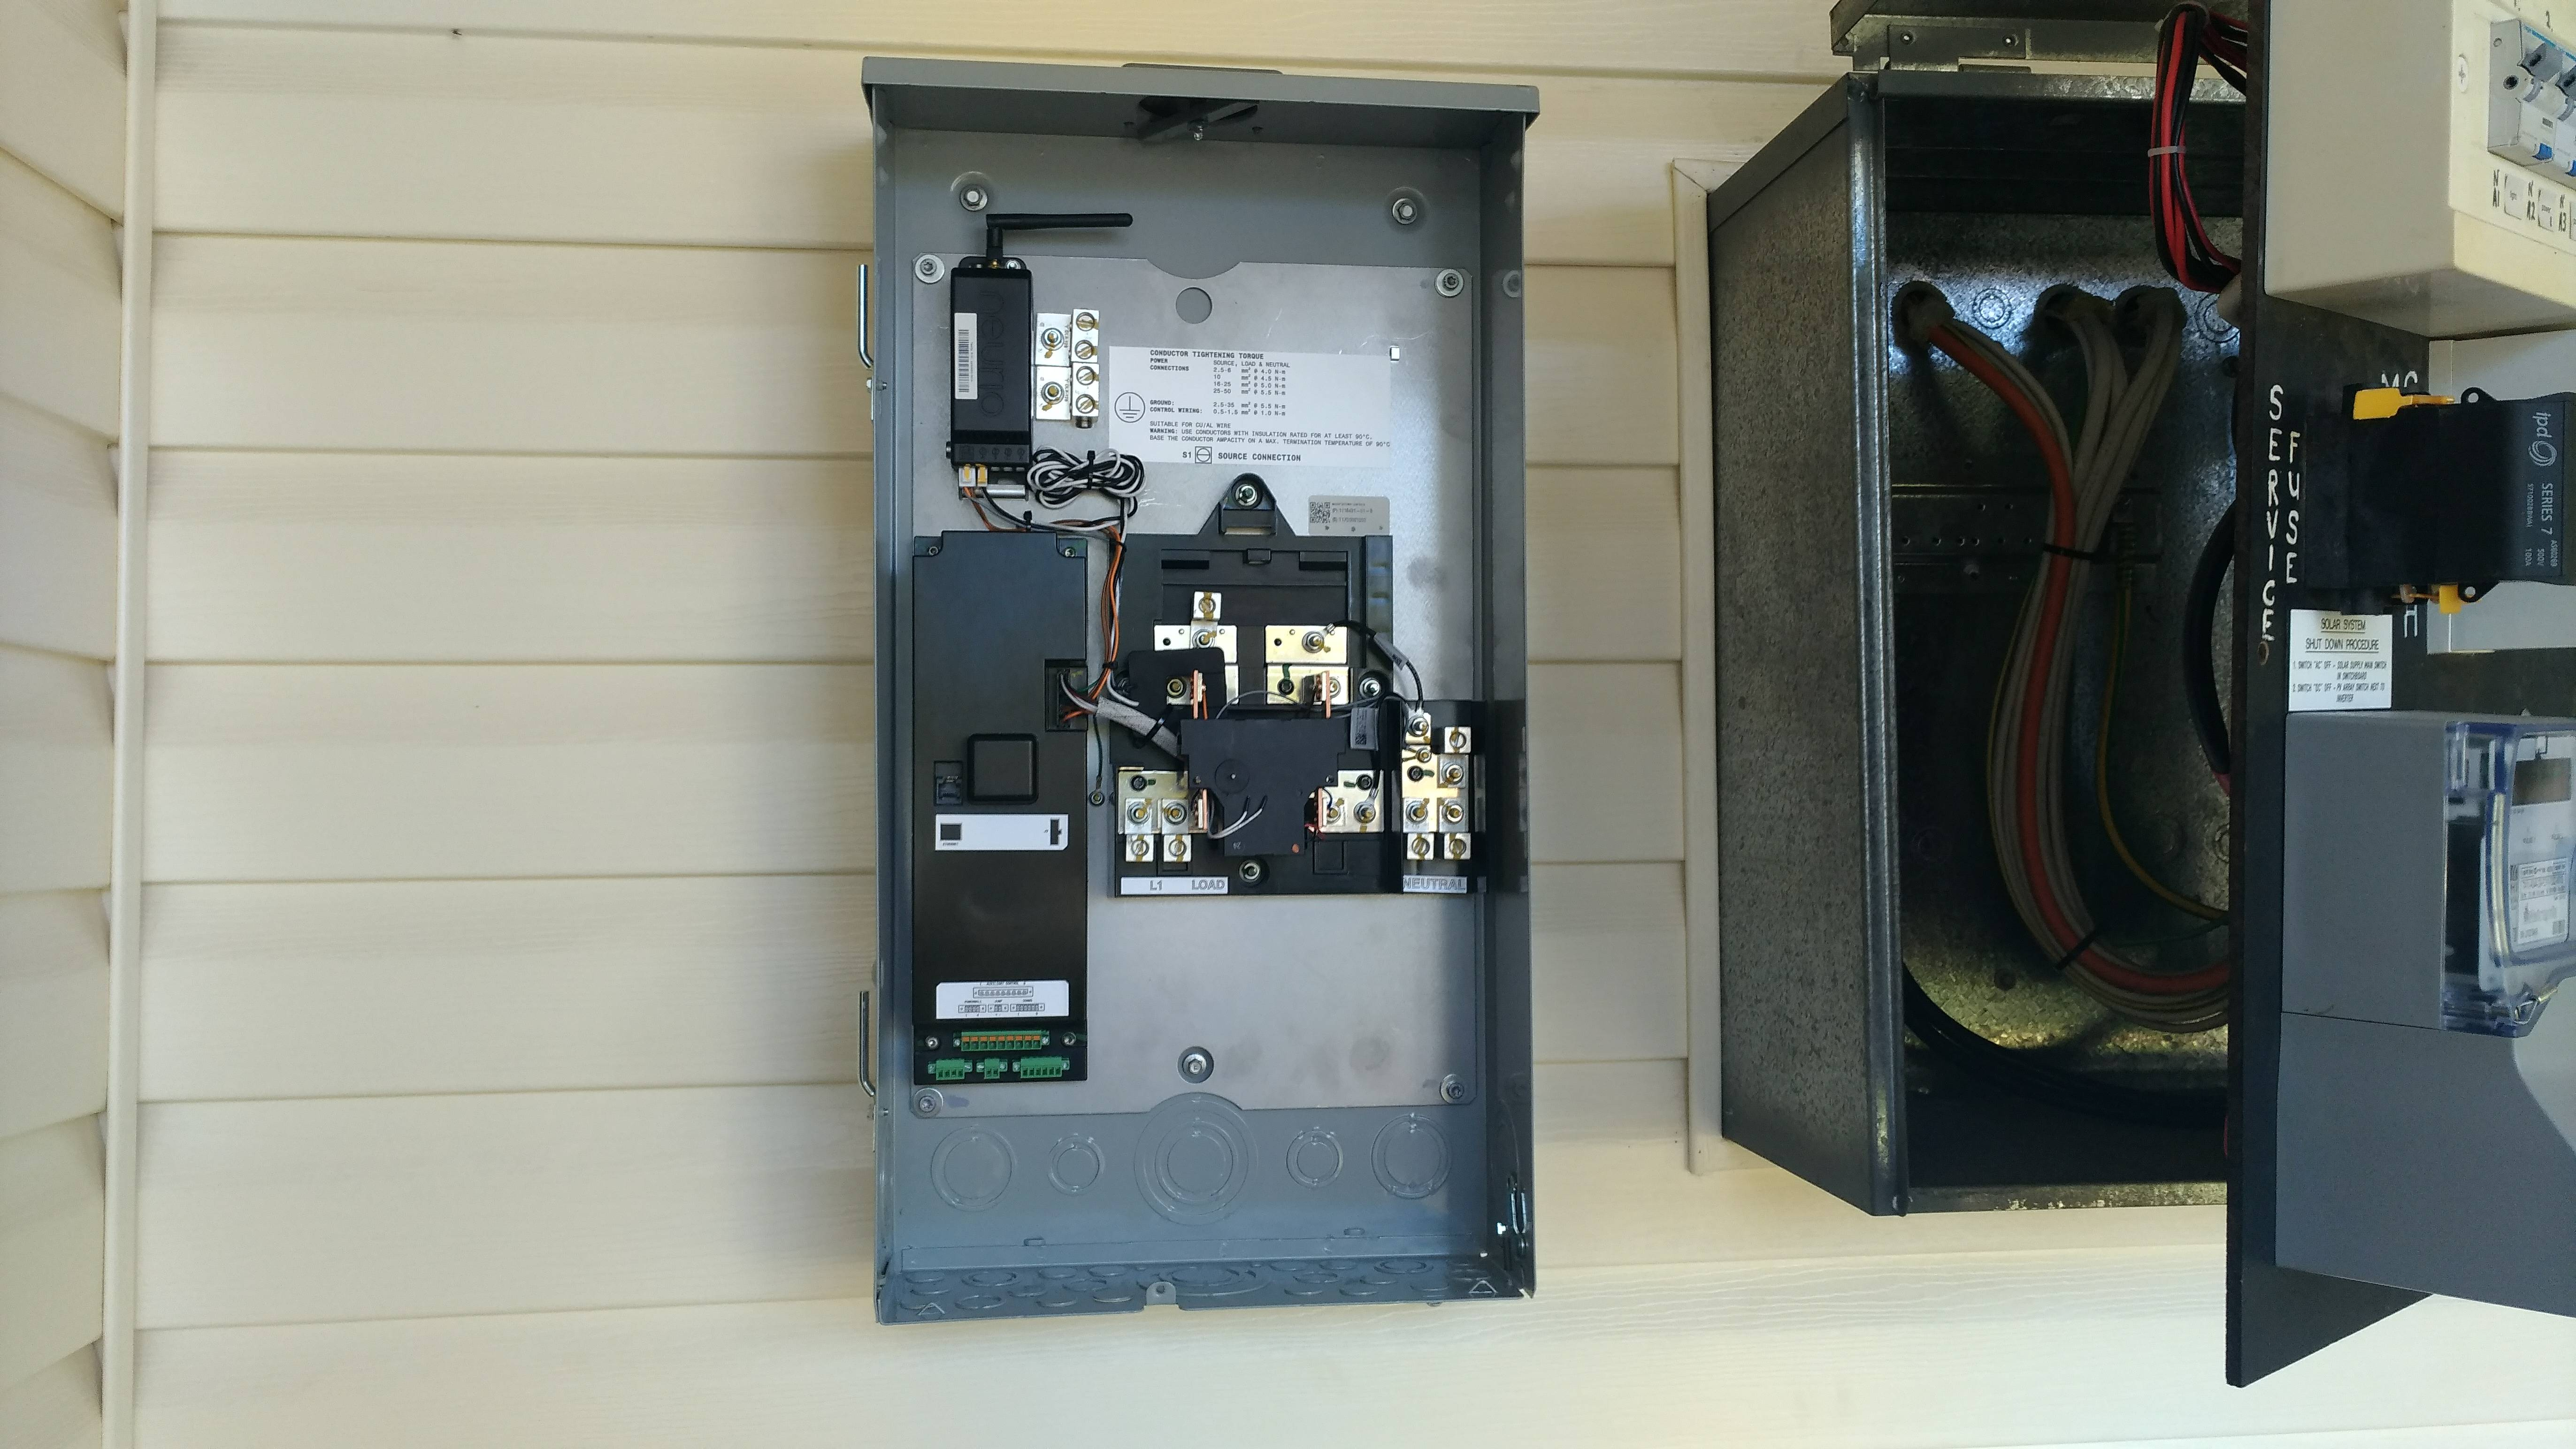 Australian Tesla Powerwall 2 Review Mikesgear Wiring Diagrams 130 All Cabling Done There Is A Clamp On The Solar Active Input To Measure Its Generation And Gateway Measures House Load From Power Cable